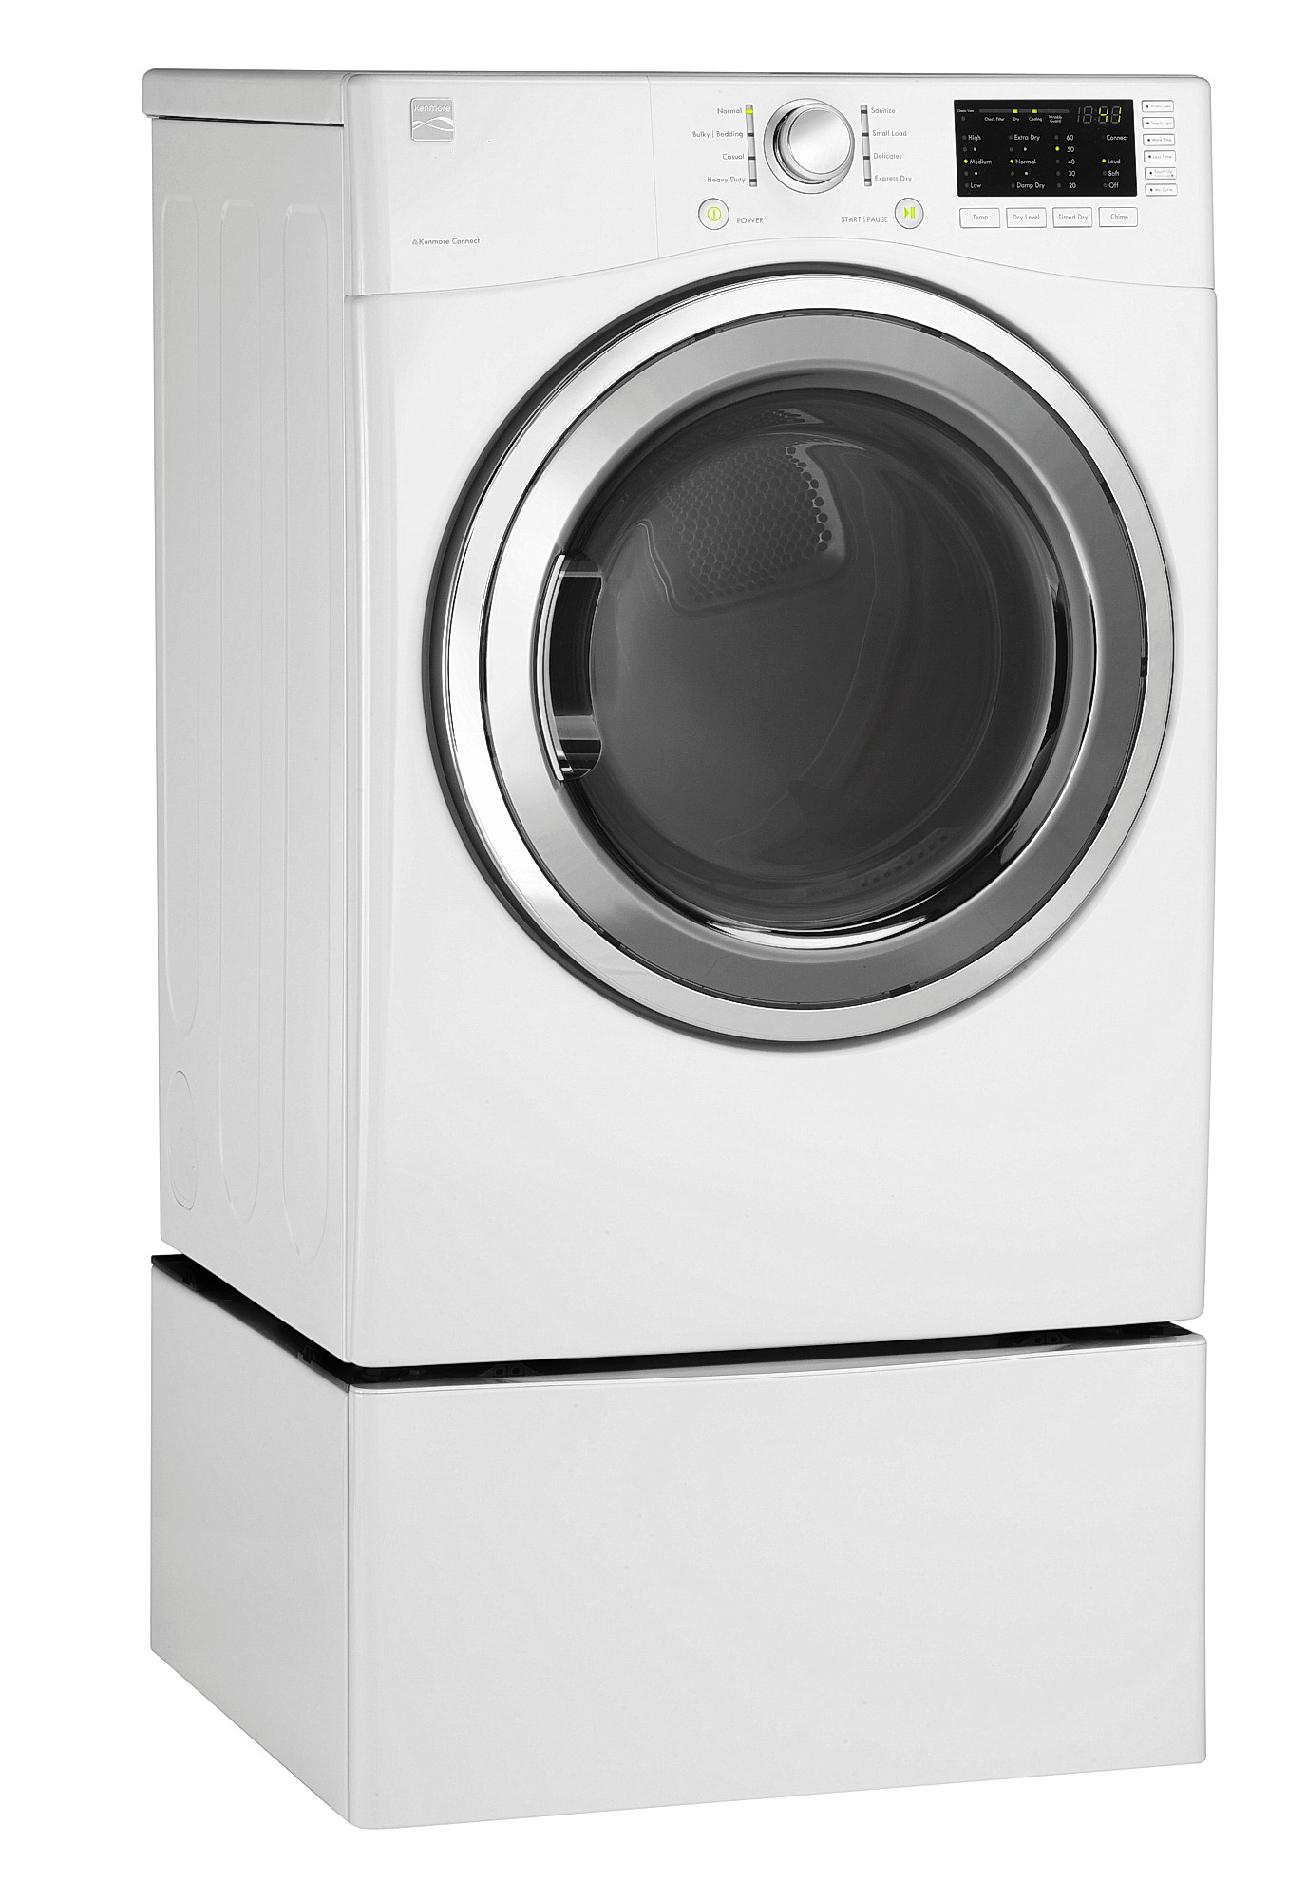 Kenmore 7.3 cu. ft. Gas Dryer - White